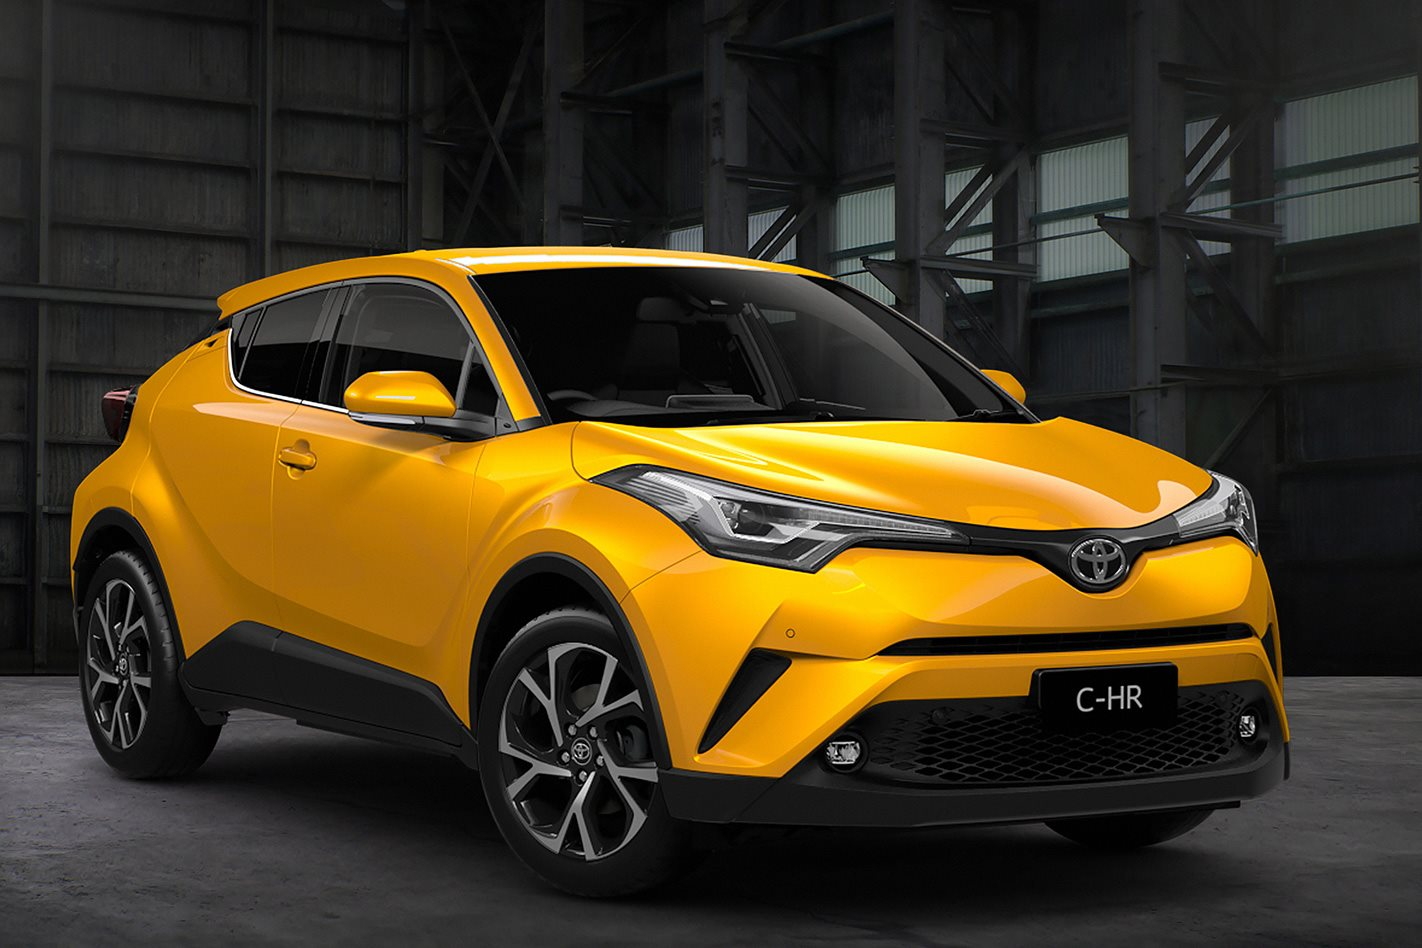 2017 Toyota C-HR to use high-tech 1.2-litre turbo engine